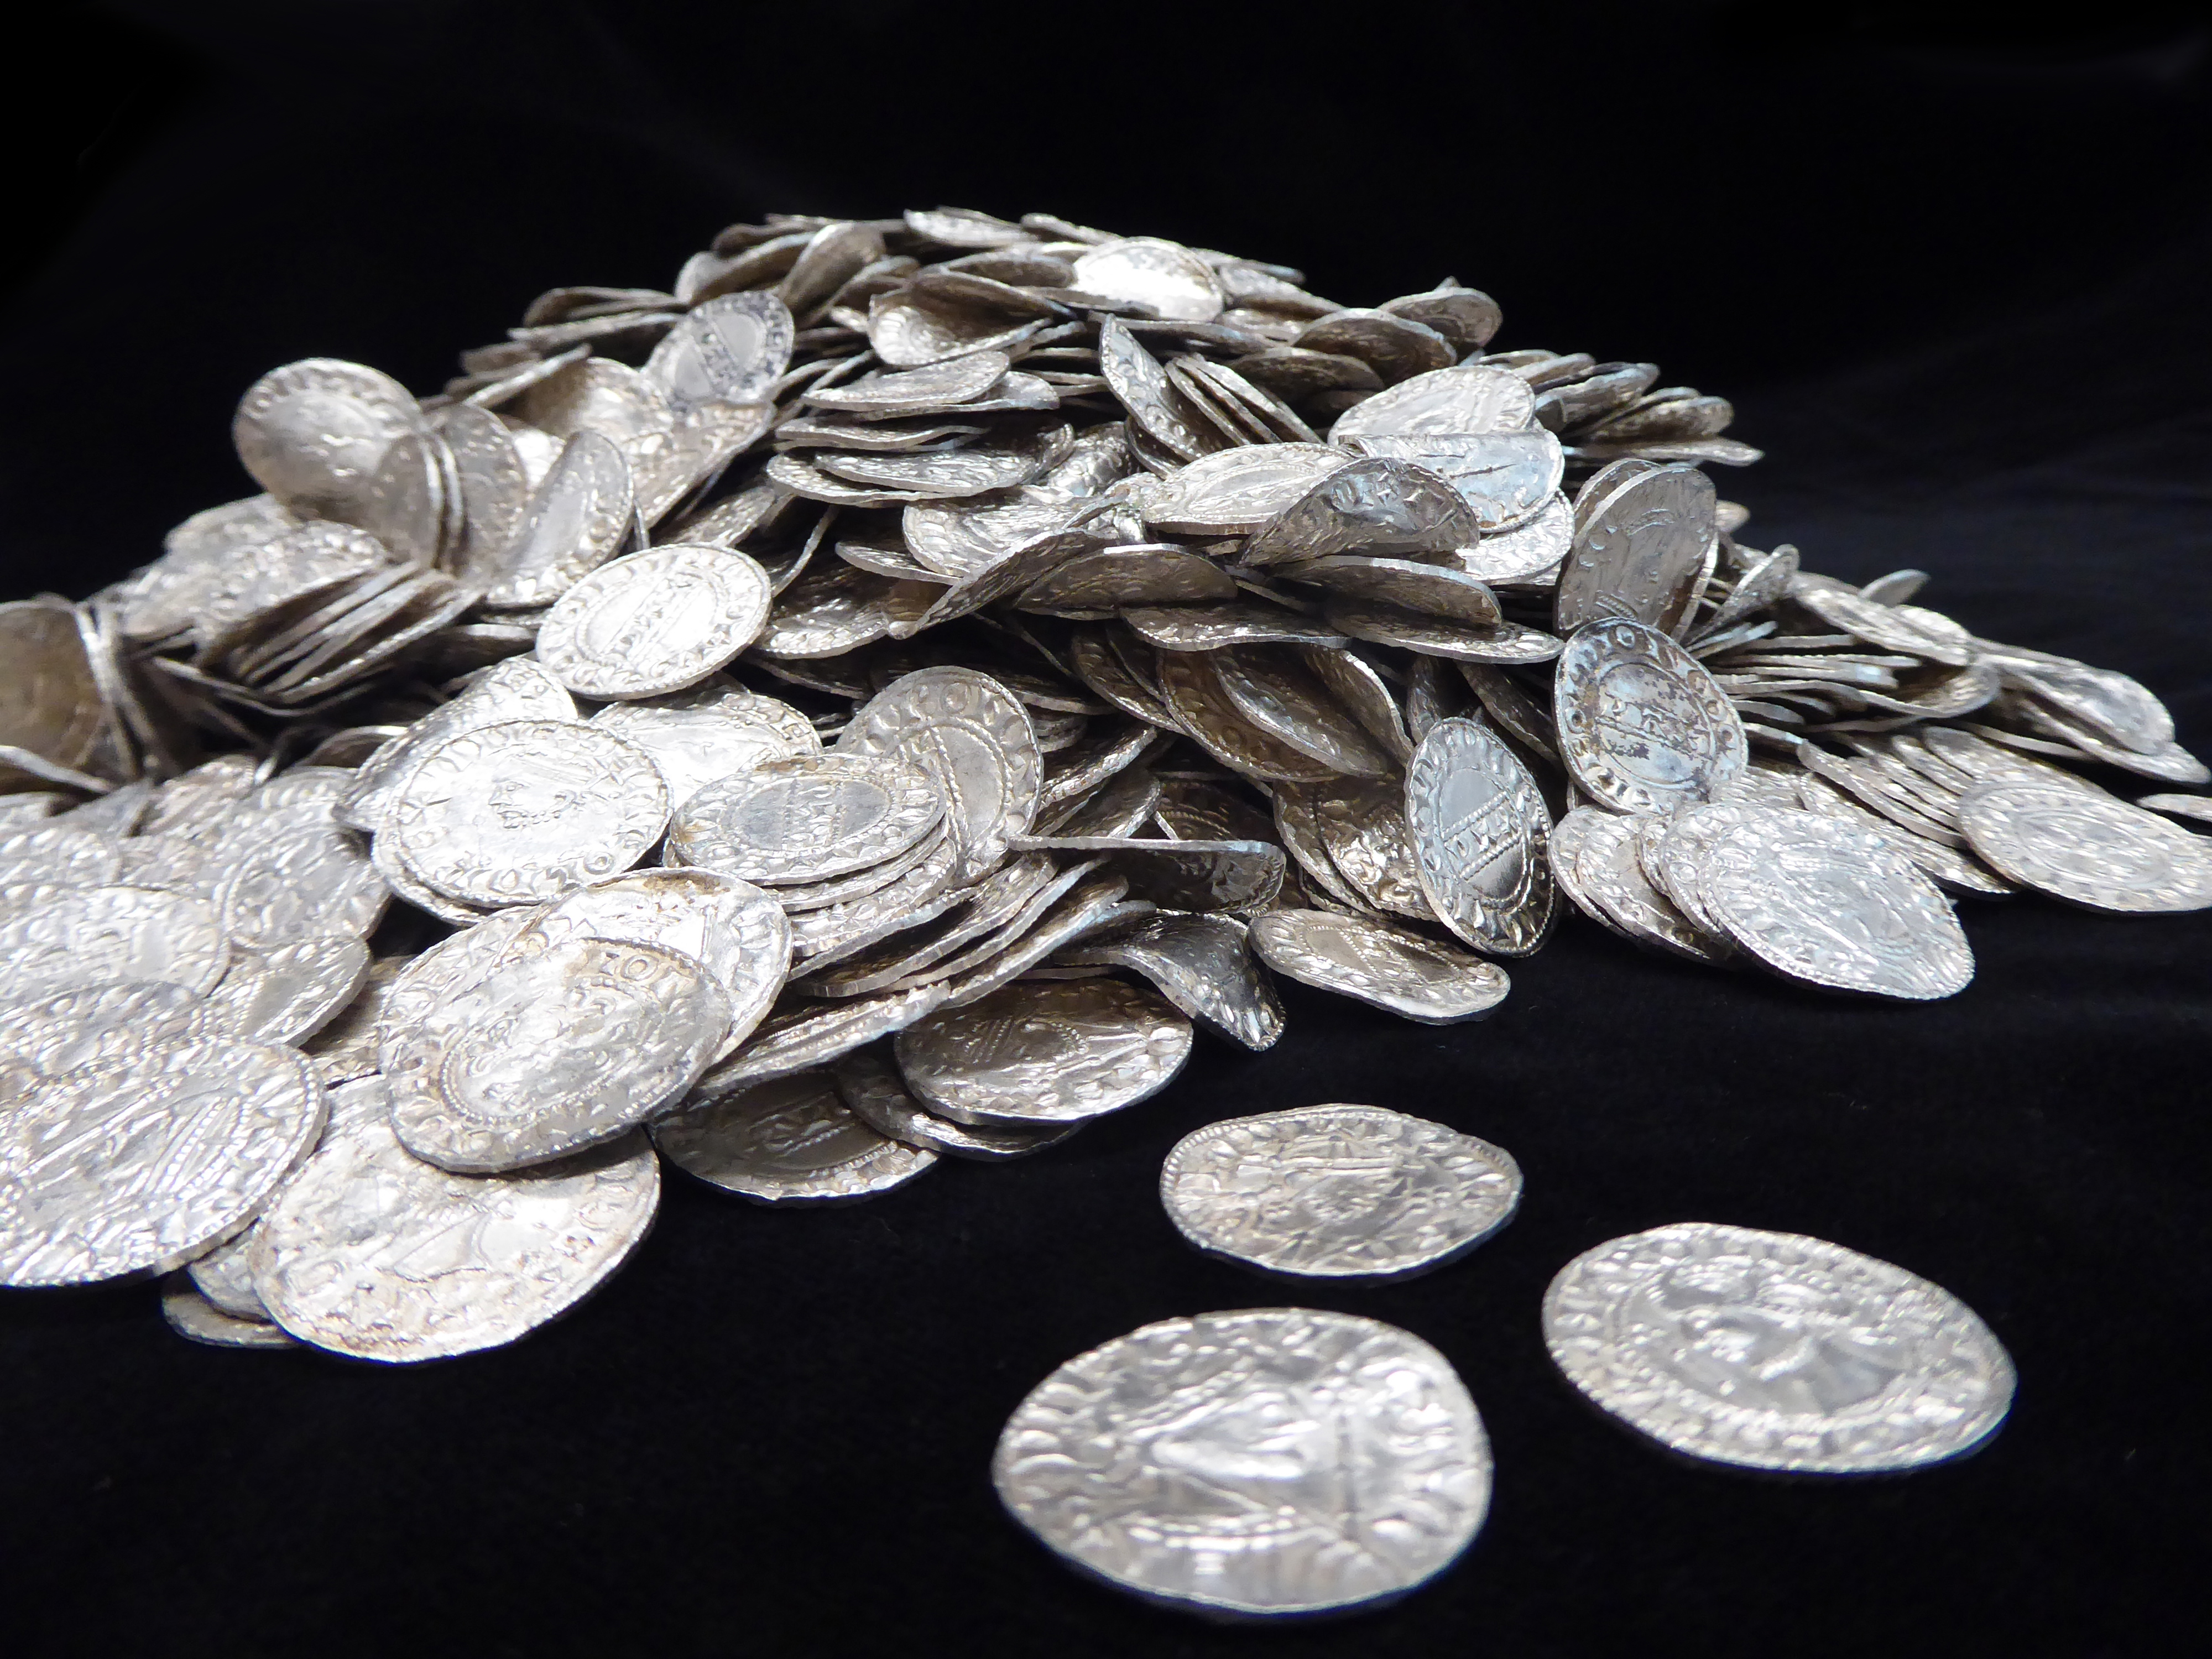 Buried treasure: 2,500 silver coins from 11th century found